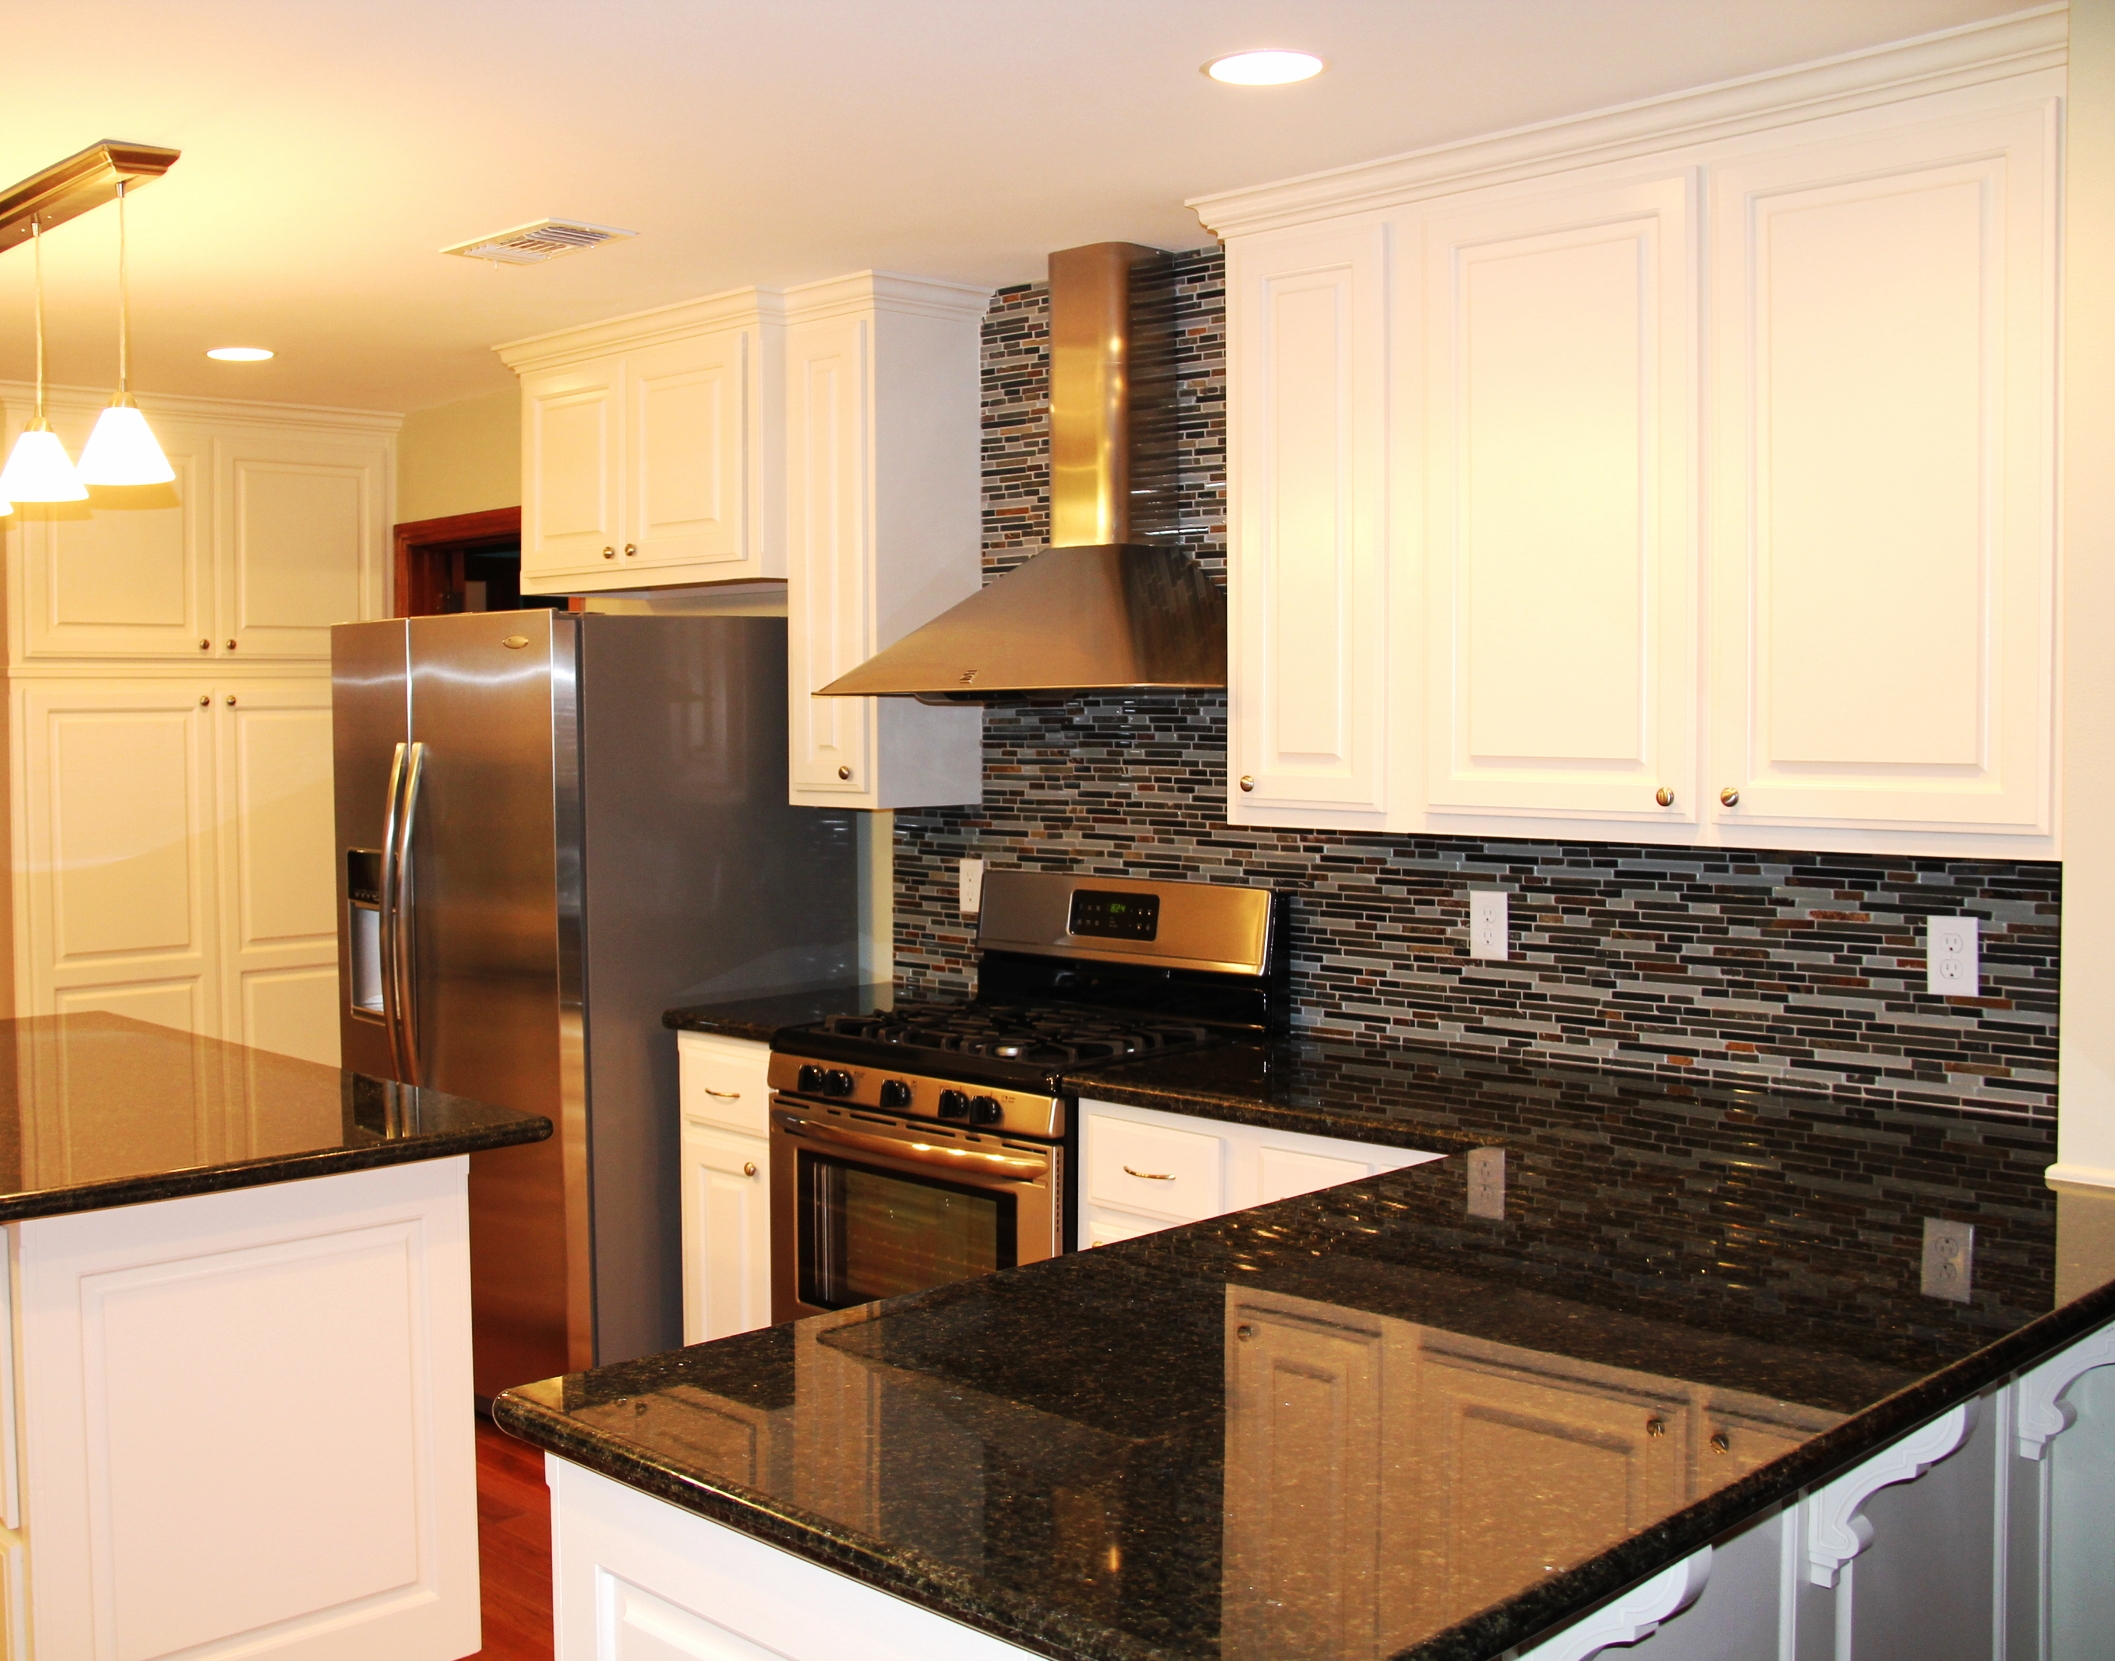 Remodels    Single room and full home remodels!